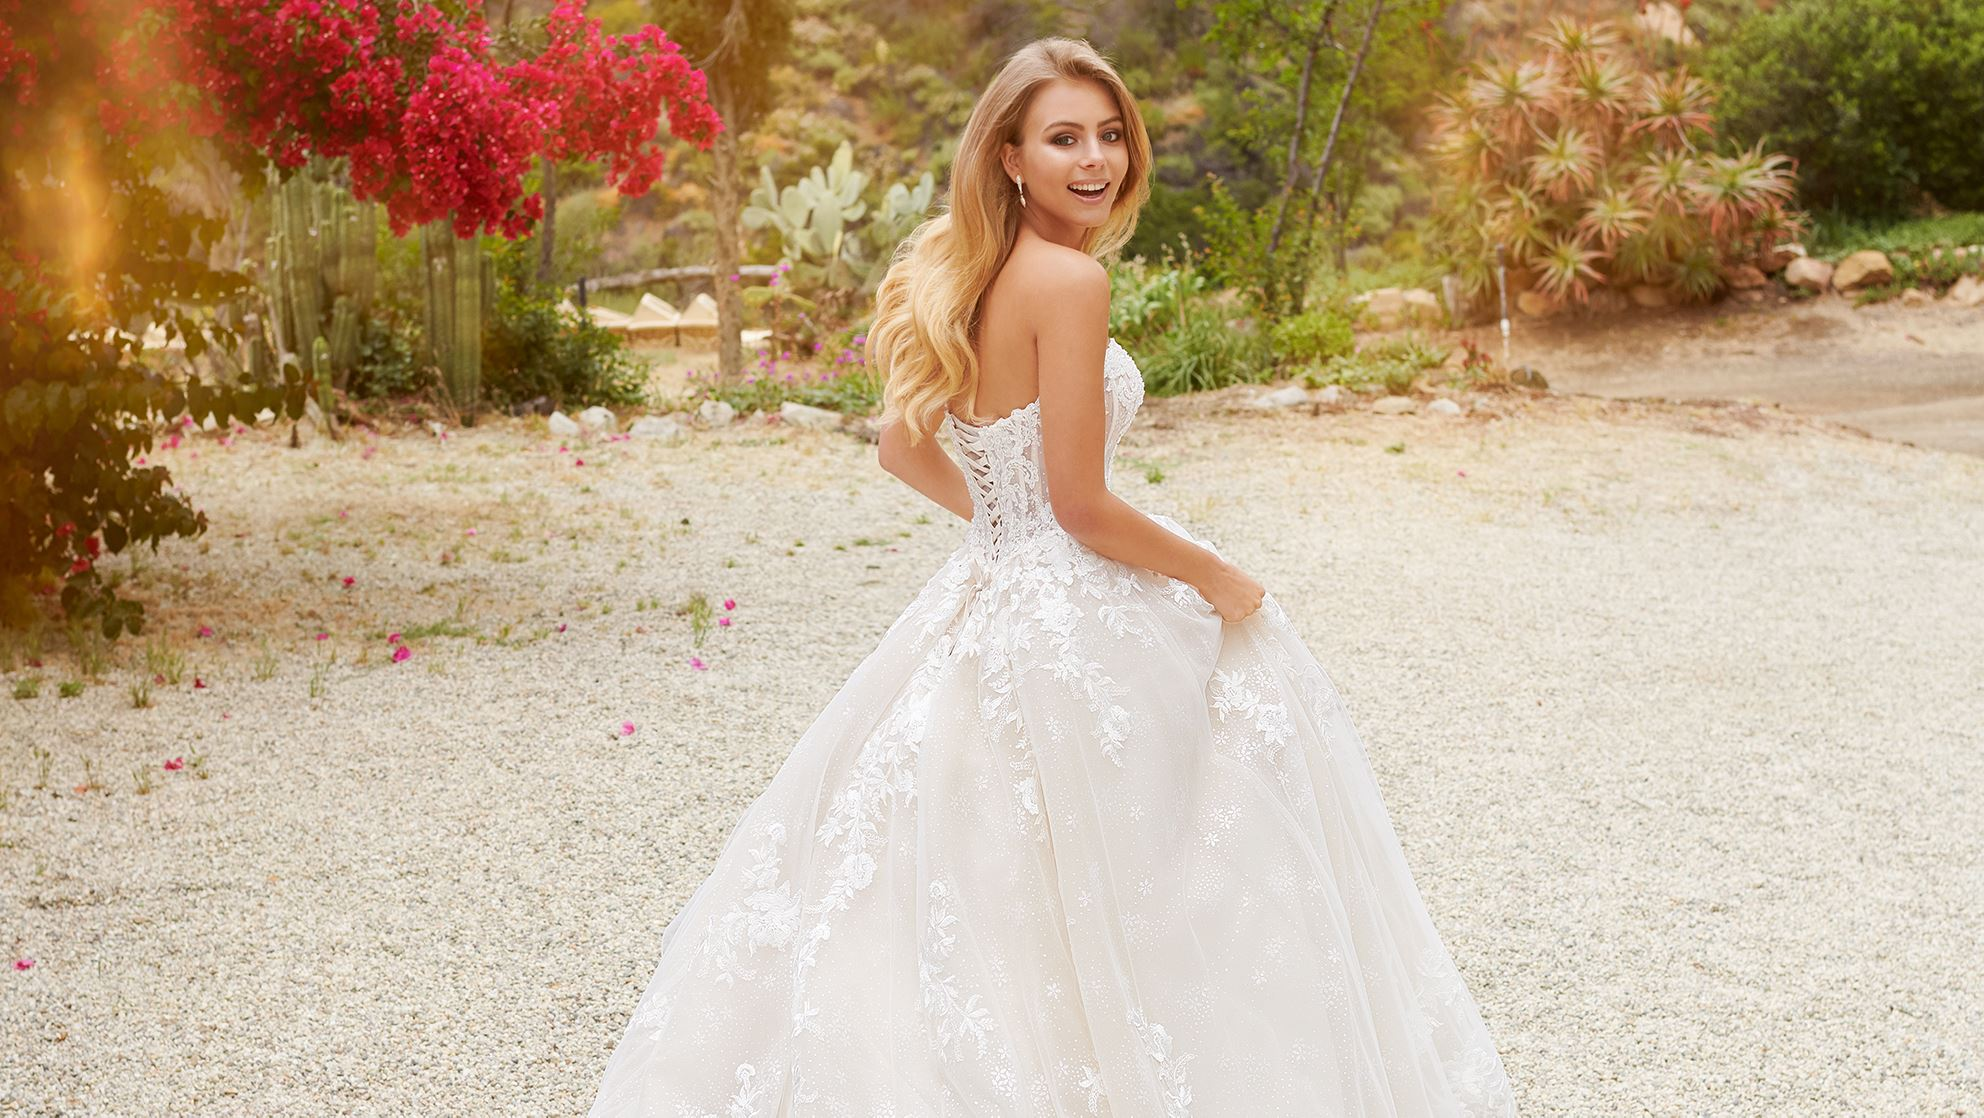 Blonde bride laughing in white ball gown wedding dress